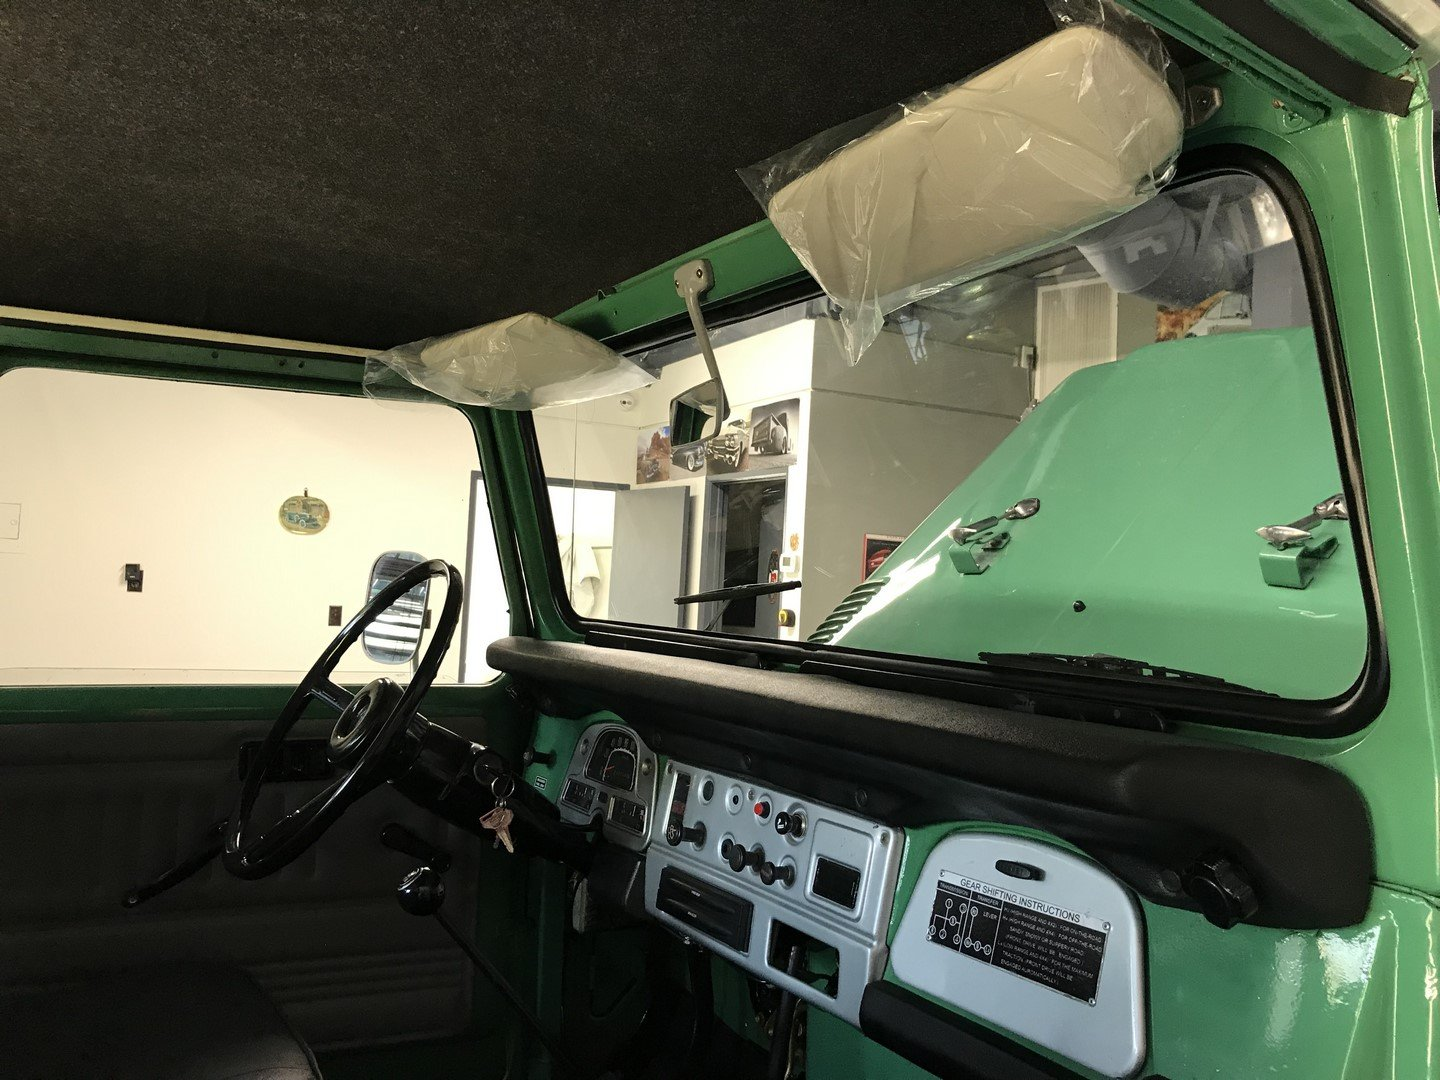 1980 TOYOTA LAND CRUISER FJ 40 4WD For Sale (picture 4 of 6)